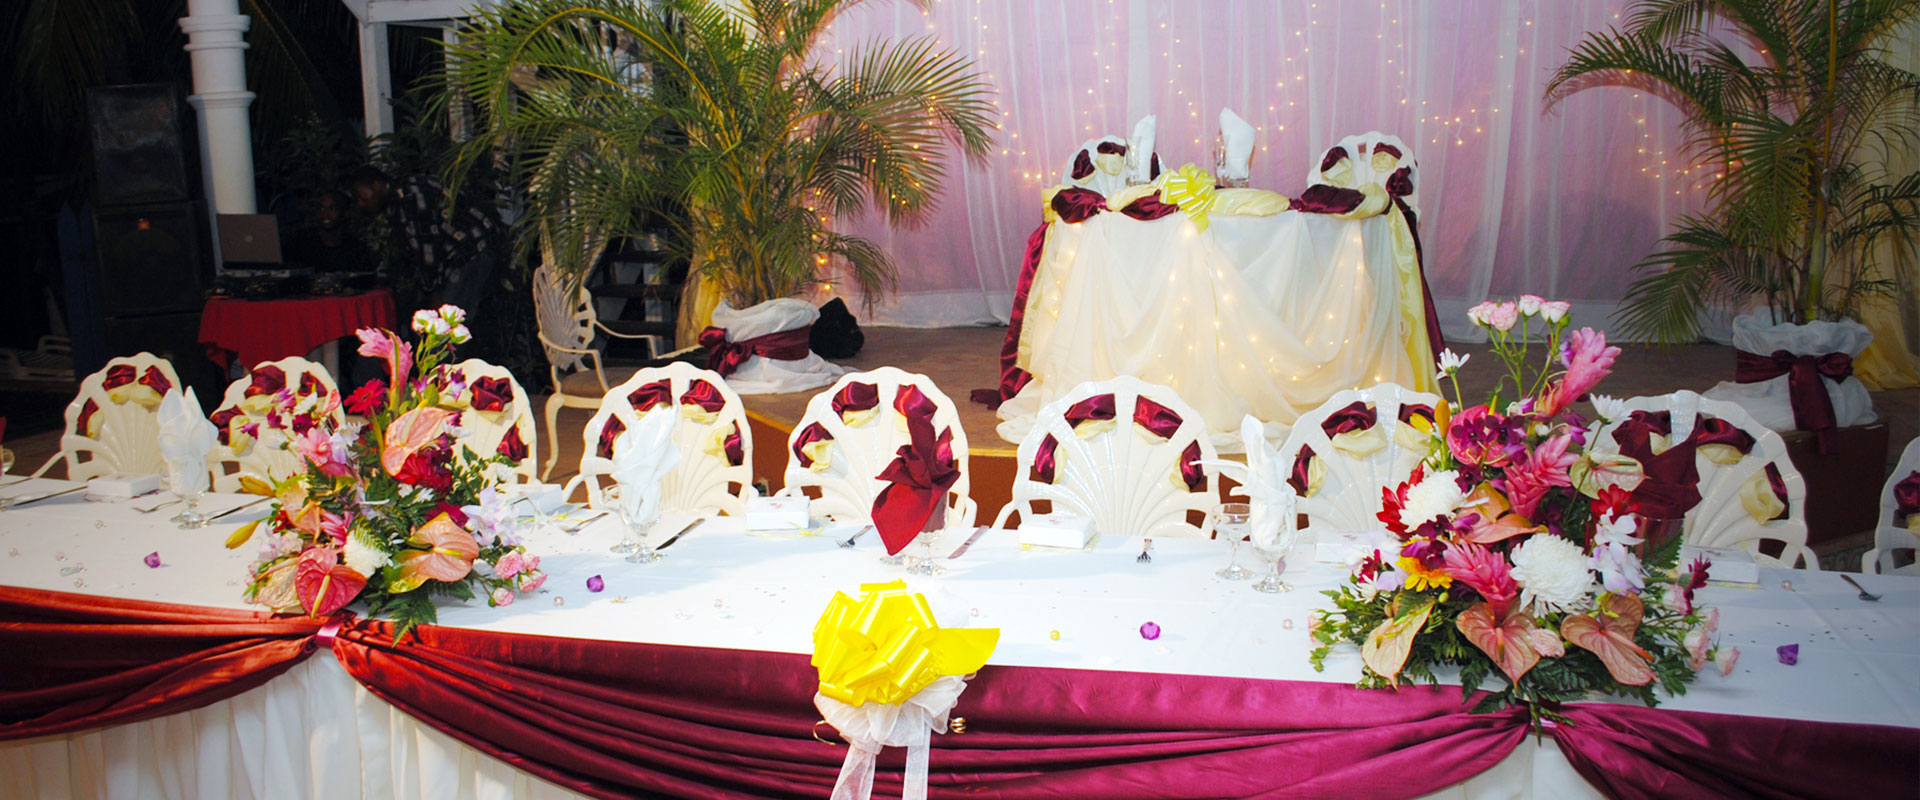 Wedding Reception by Faithful Wedding Services